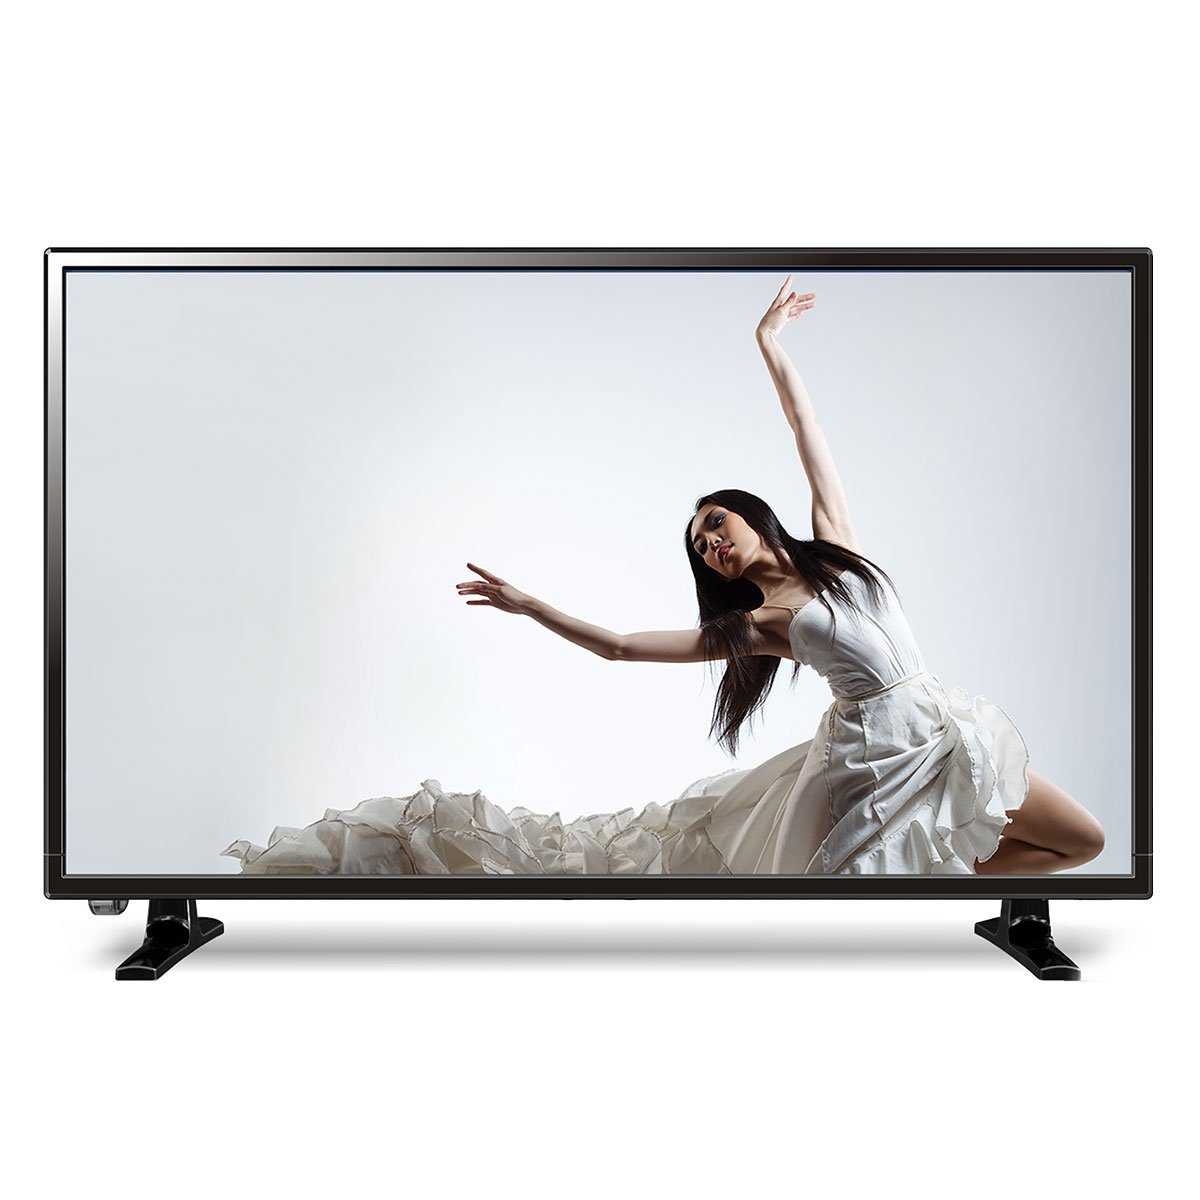 haier 22 inch led tv. haier 22 inch led tv